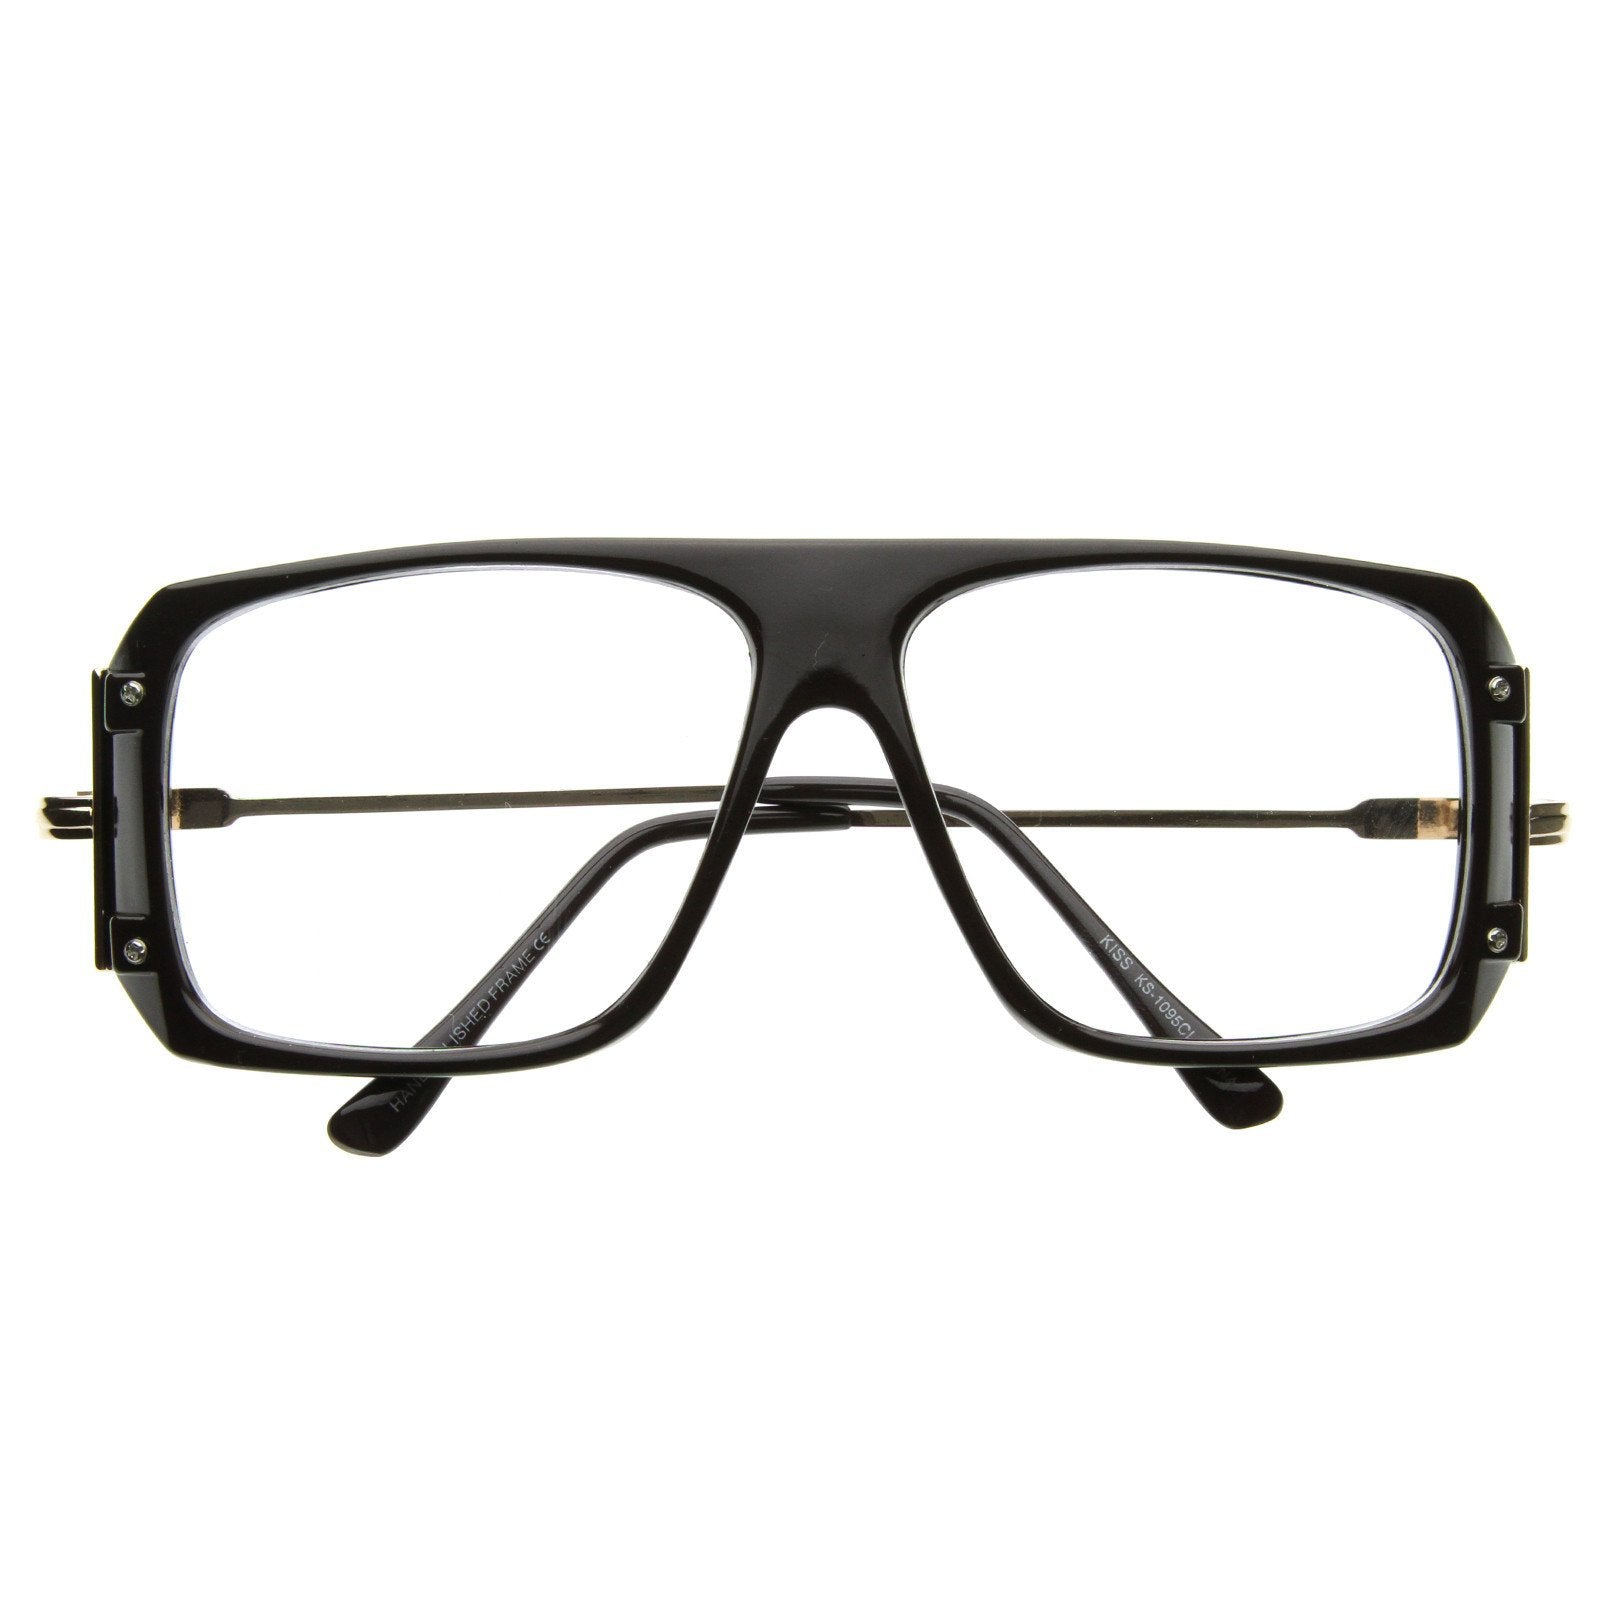 Matte Retro HIpster Clear Lens Square Sun Glasses with Metal Accents